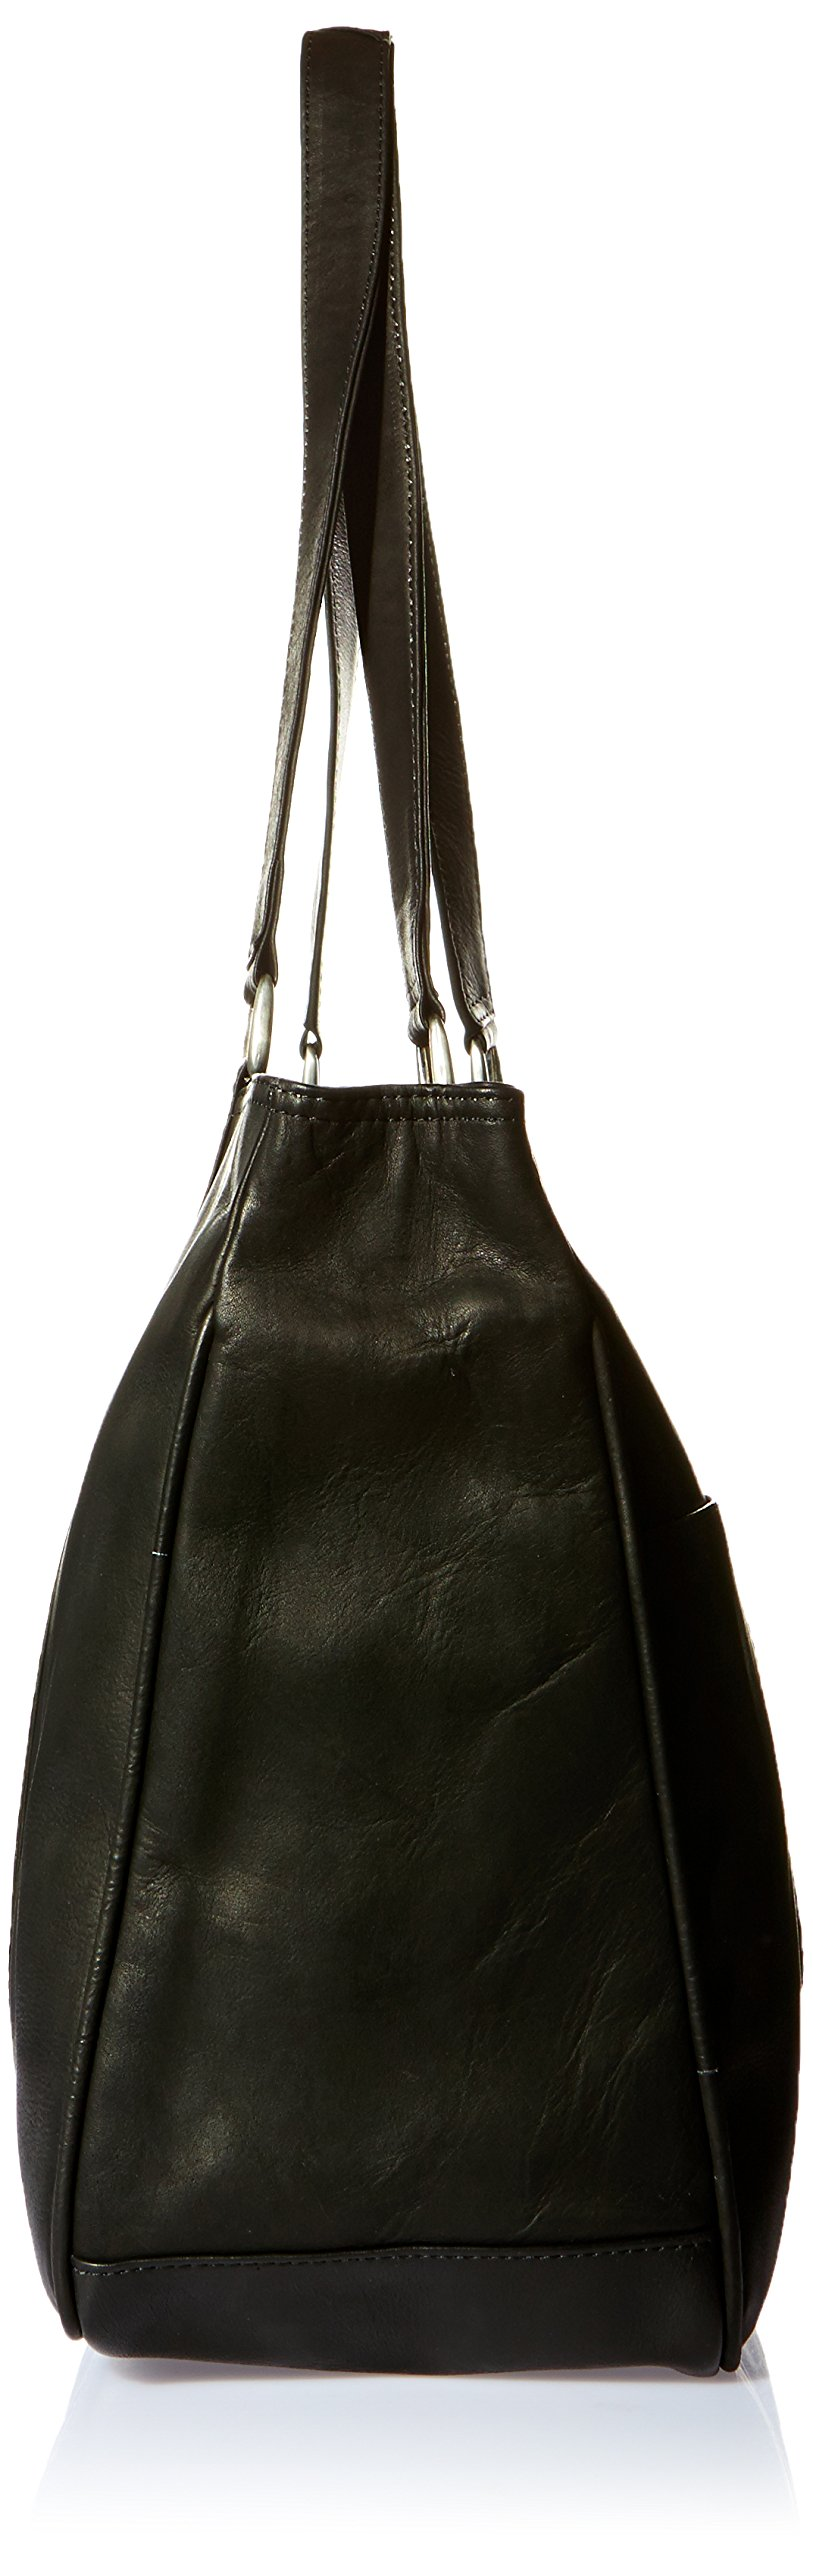 Piel Leather Large Shopping Bag, Black, One Size by Piel Leather (Image #3)